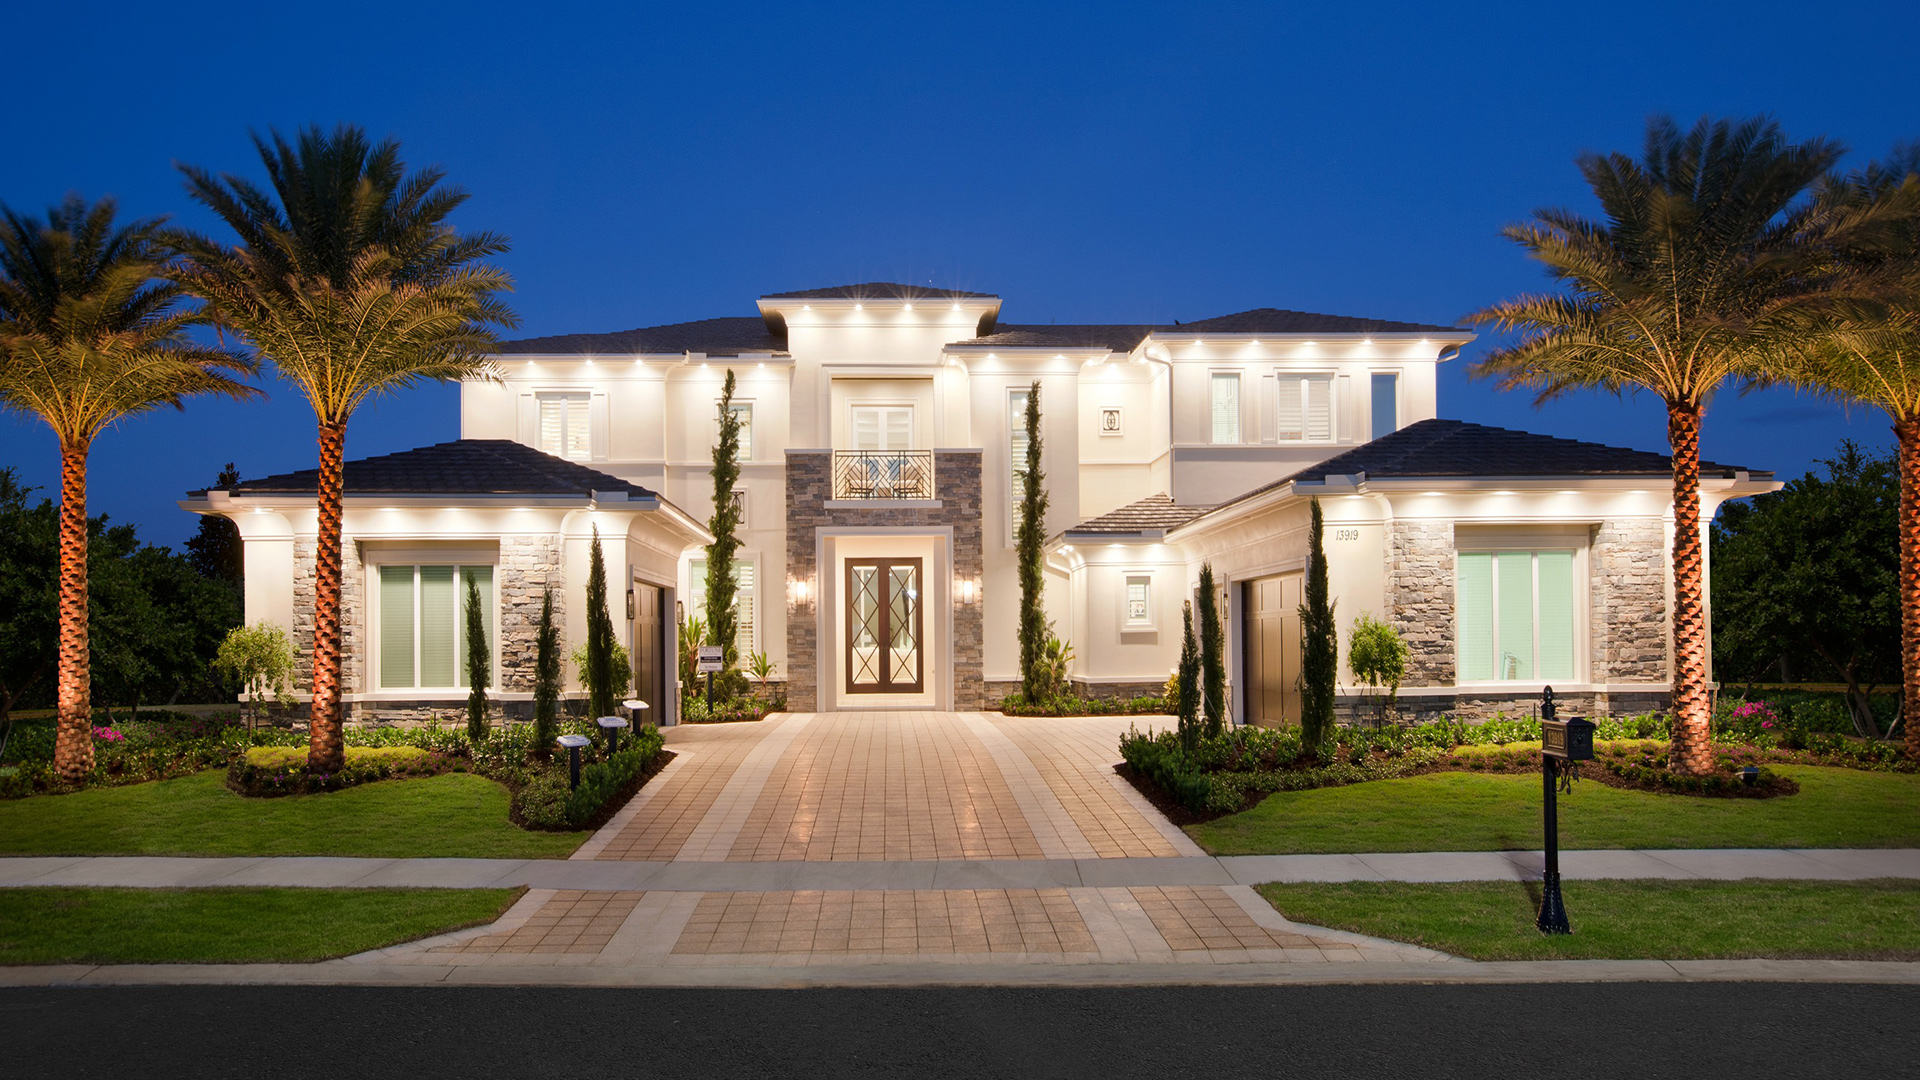 Royal palm polo signature collection the custom homes for Luxury home collection